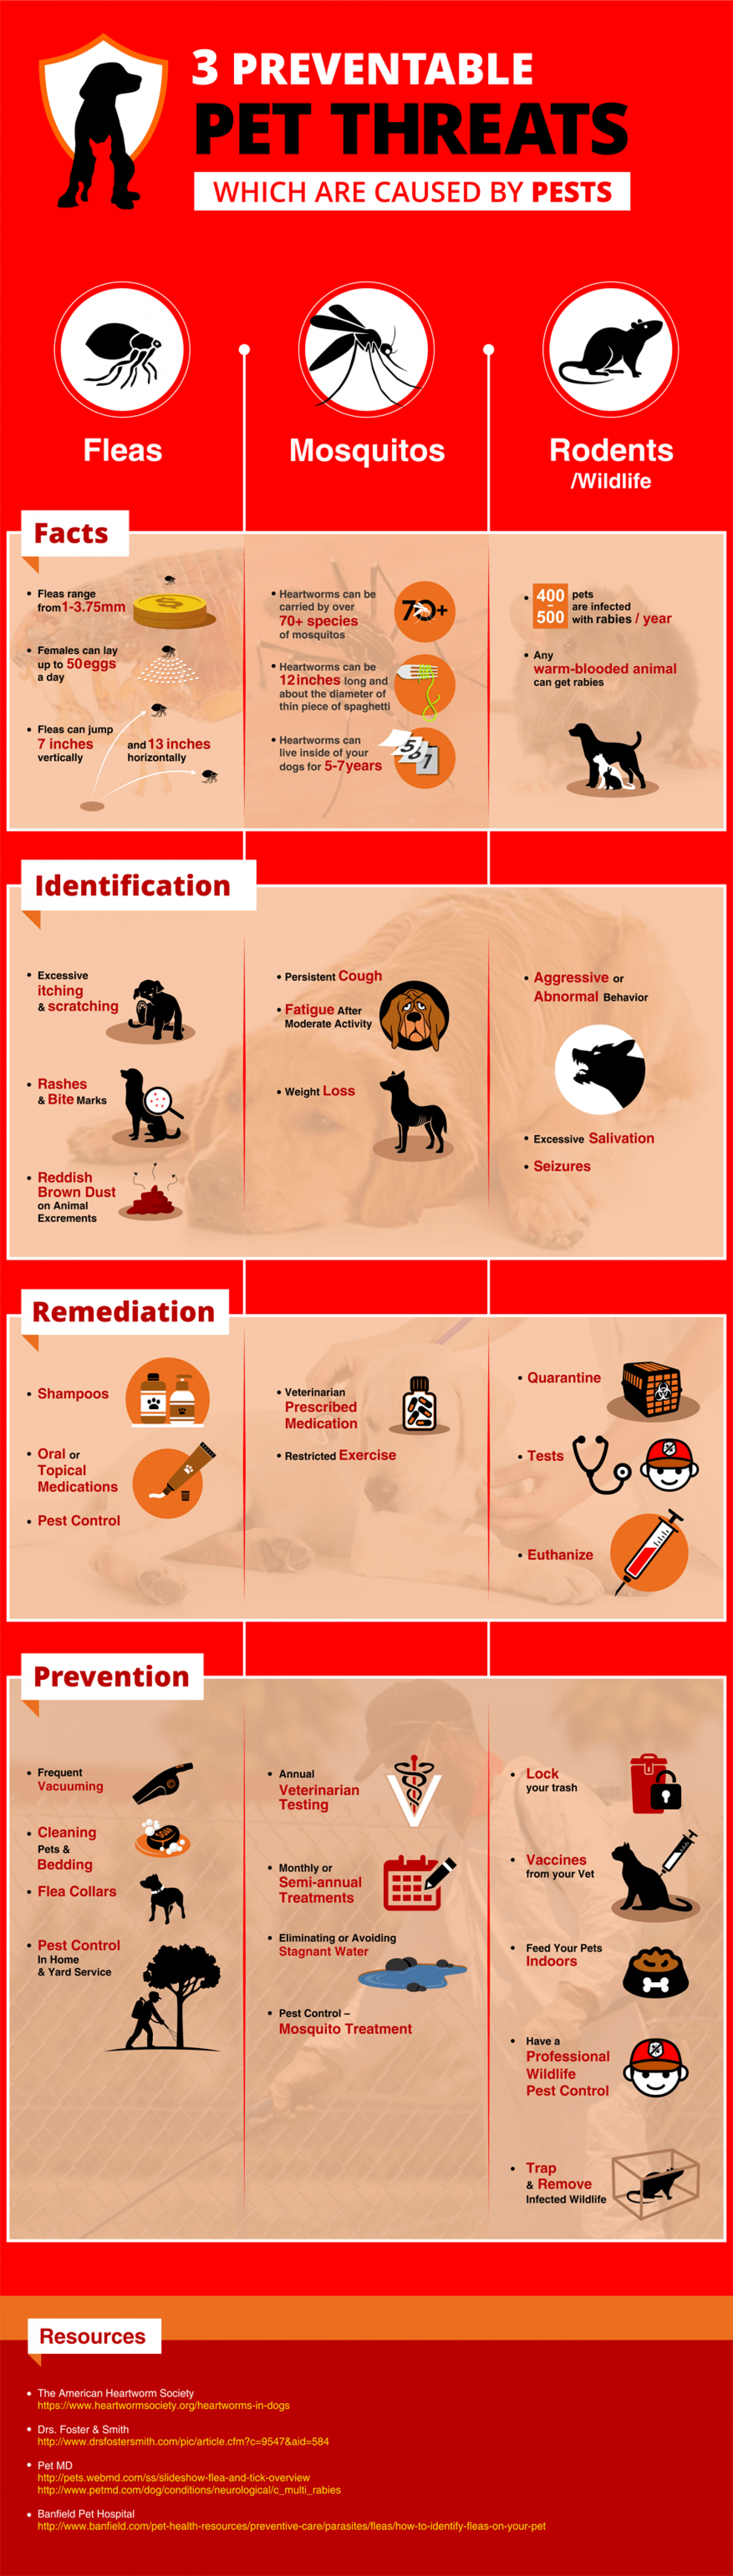 3 Preventable Pet Threats Which are Caused by Pests Infographic